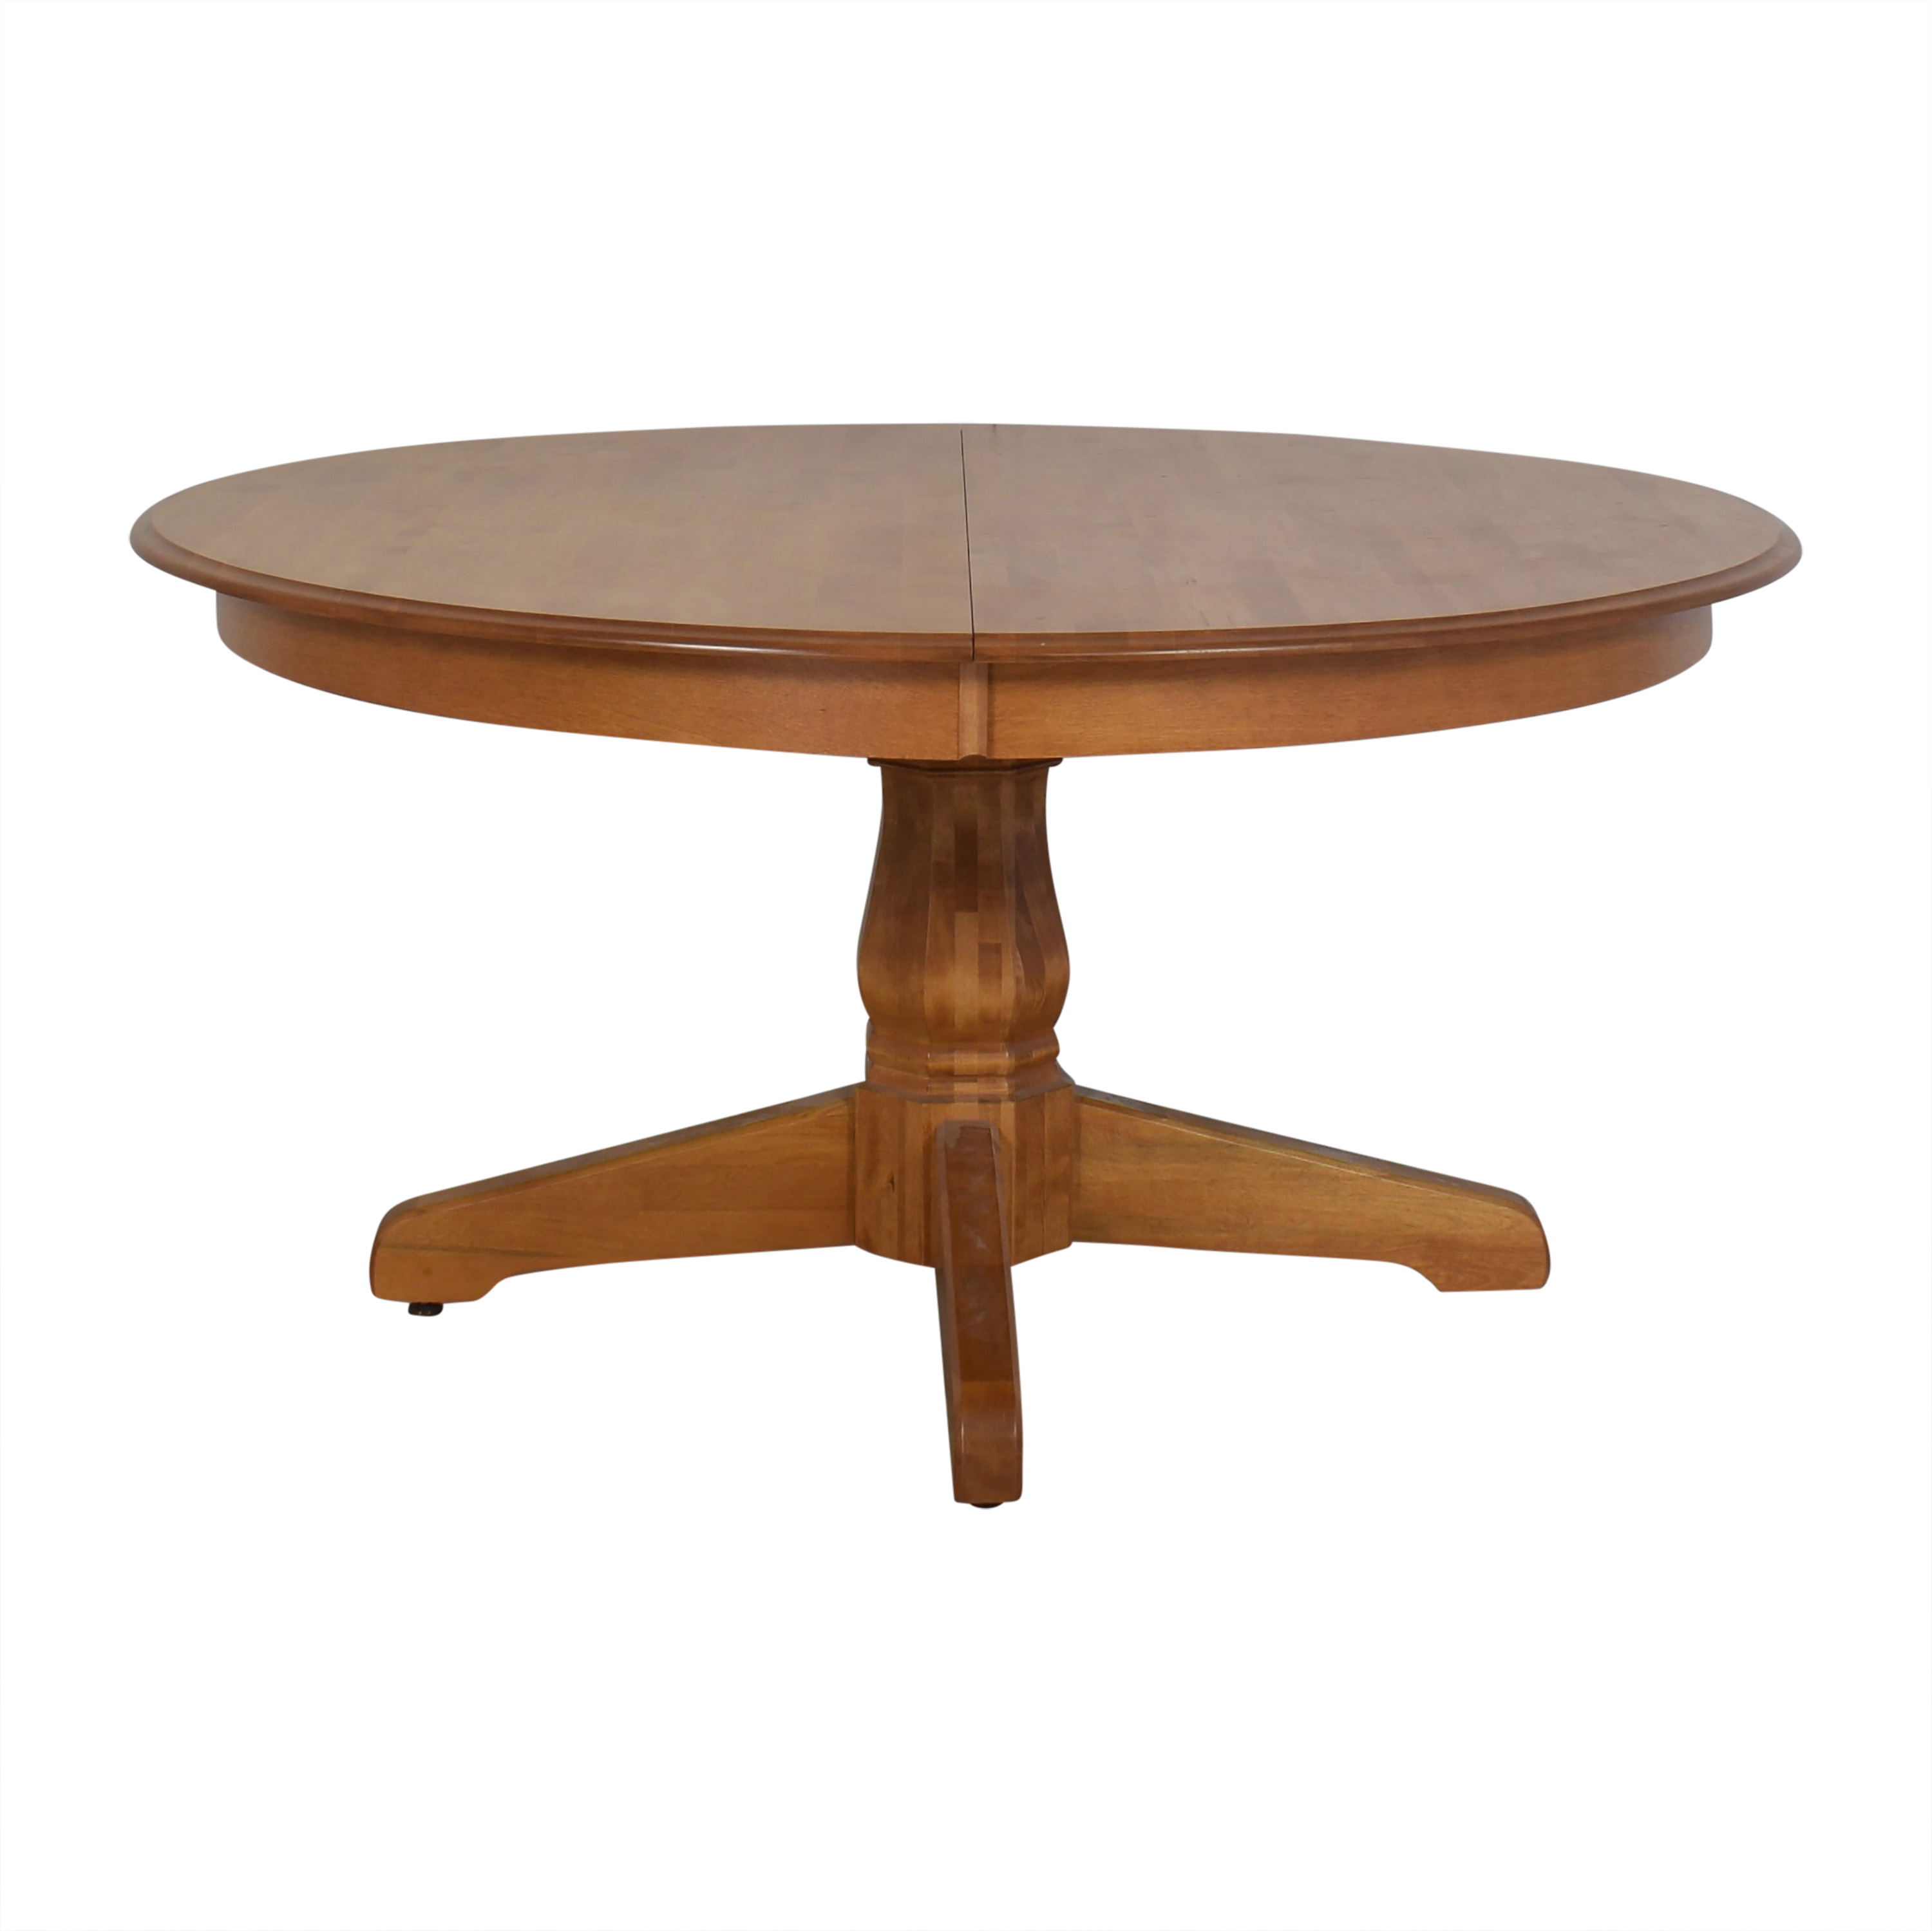 shop Canadel Canadel Dining Room Table online